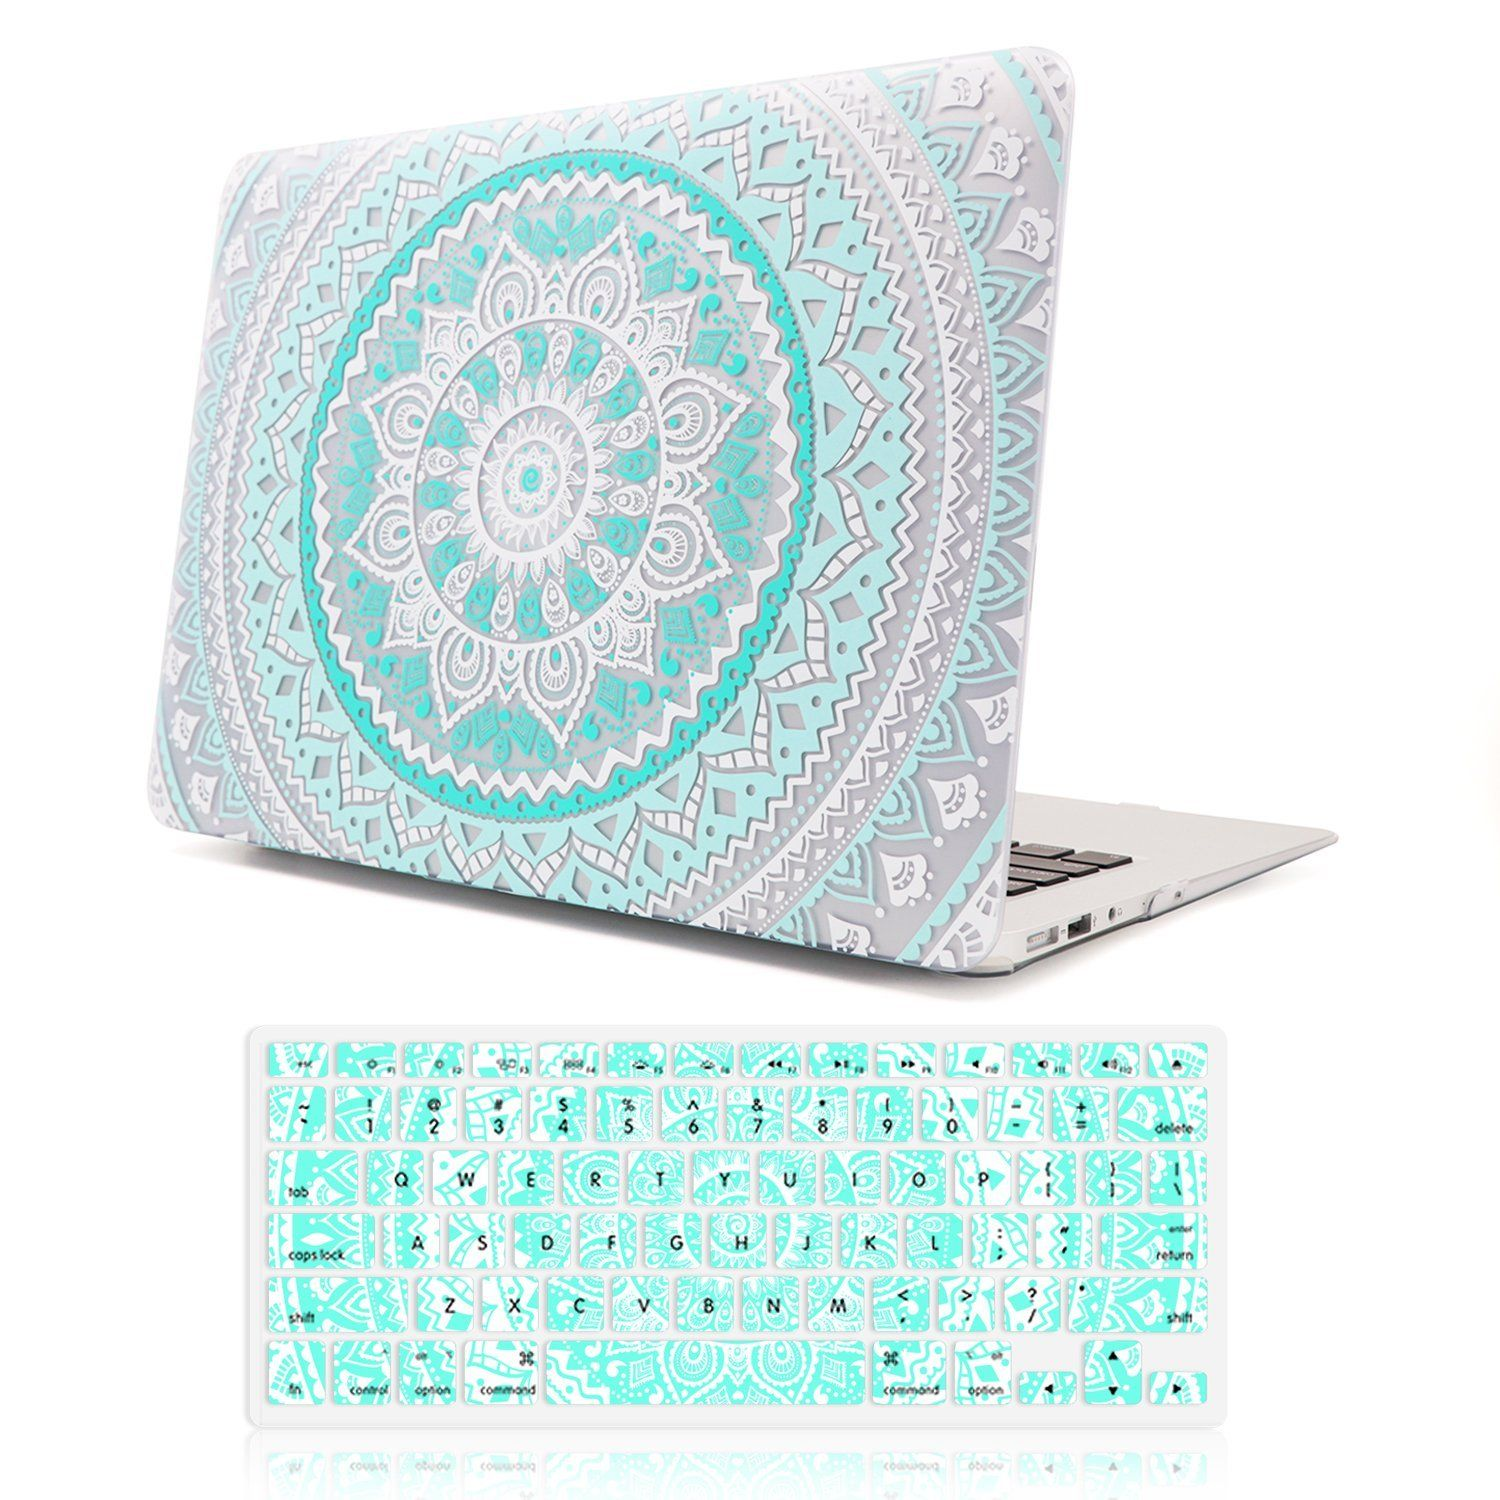 reputable site 00d02 2e247 Amazon.com: Macbook Air 13 Inch Case, iCasso Macbook Case Hard Shell ...